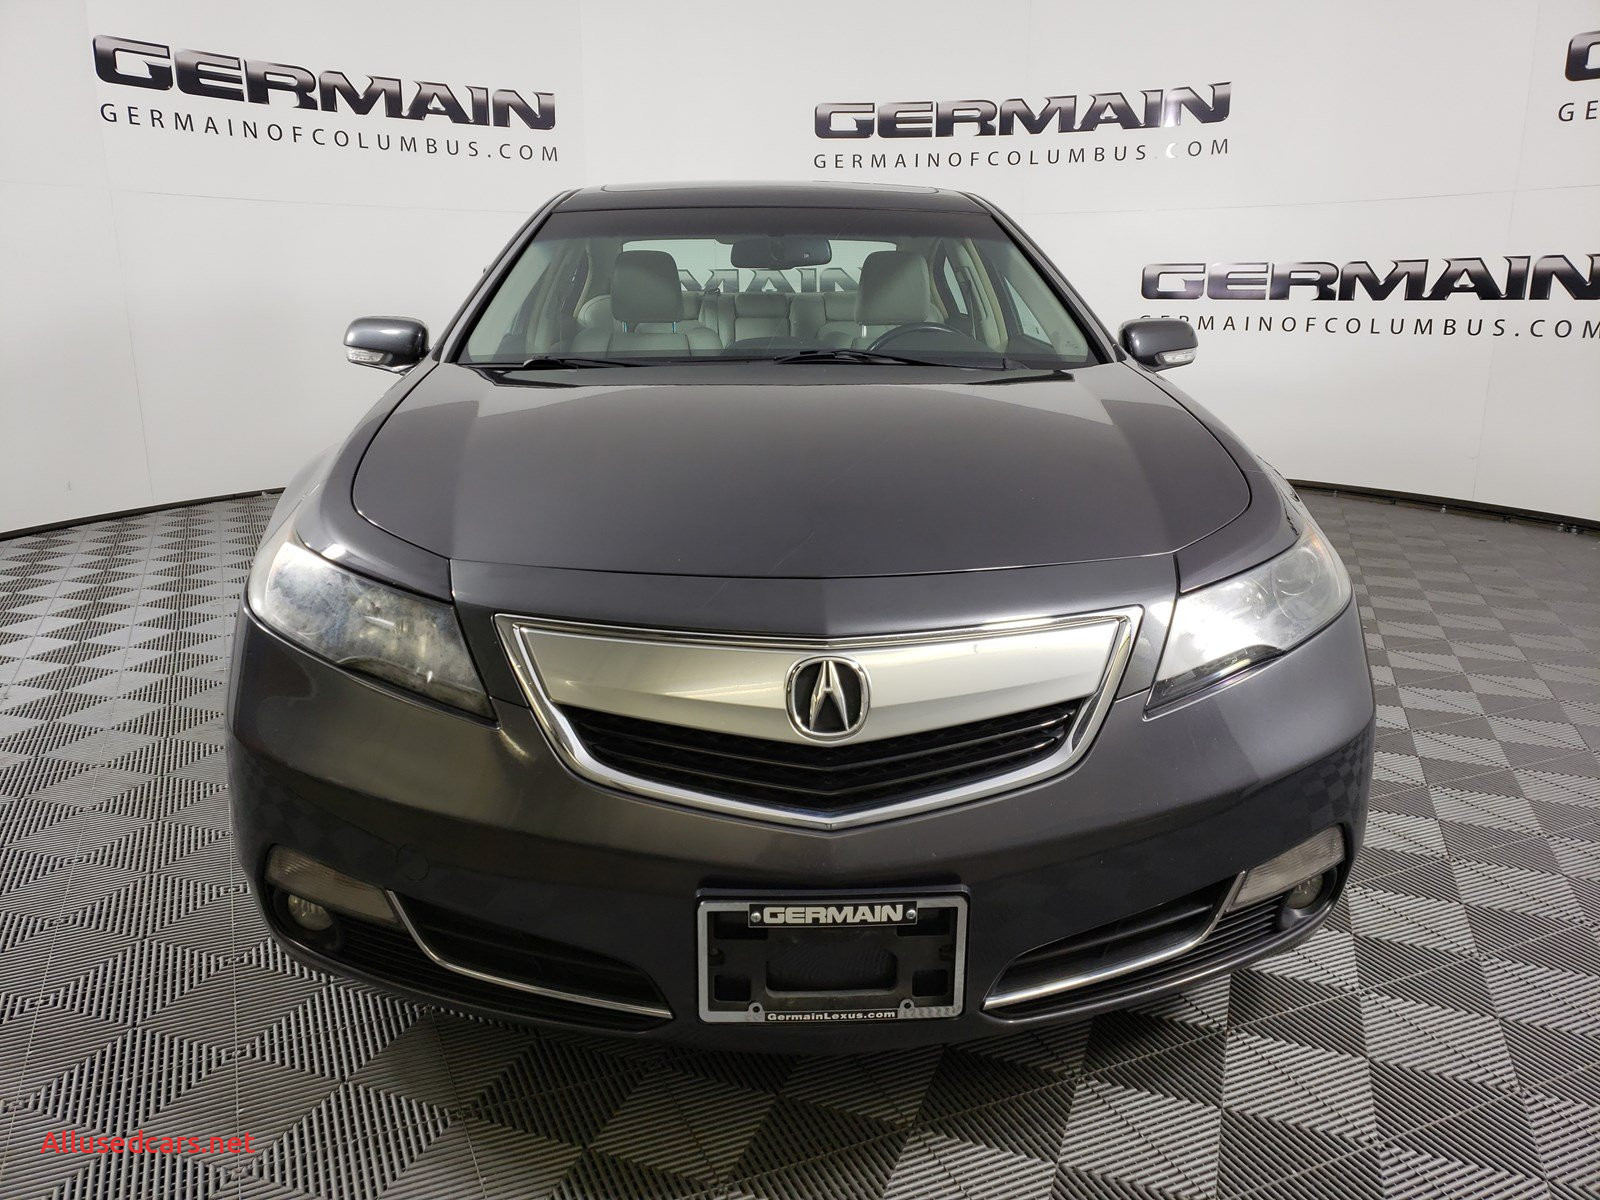 2012 Acura Tl Best Of Pre Owned 2012 Acura Tl Tech Auto with Navigation